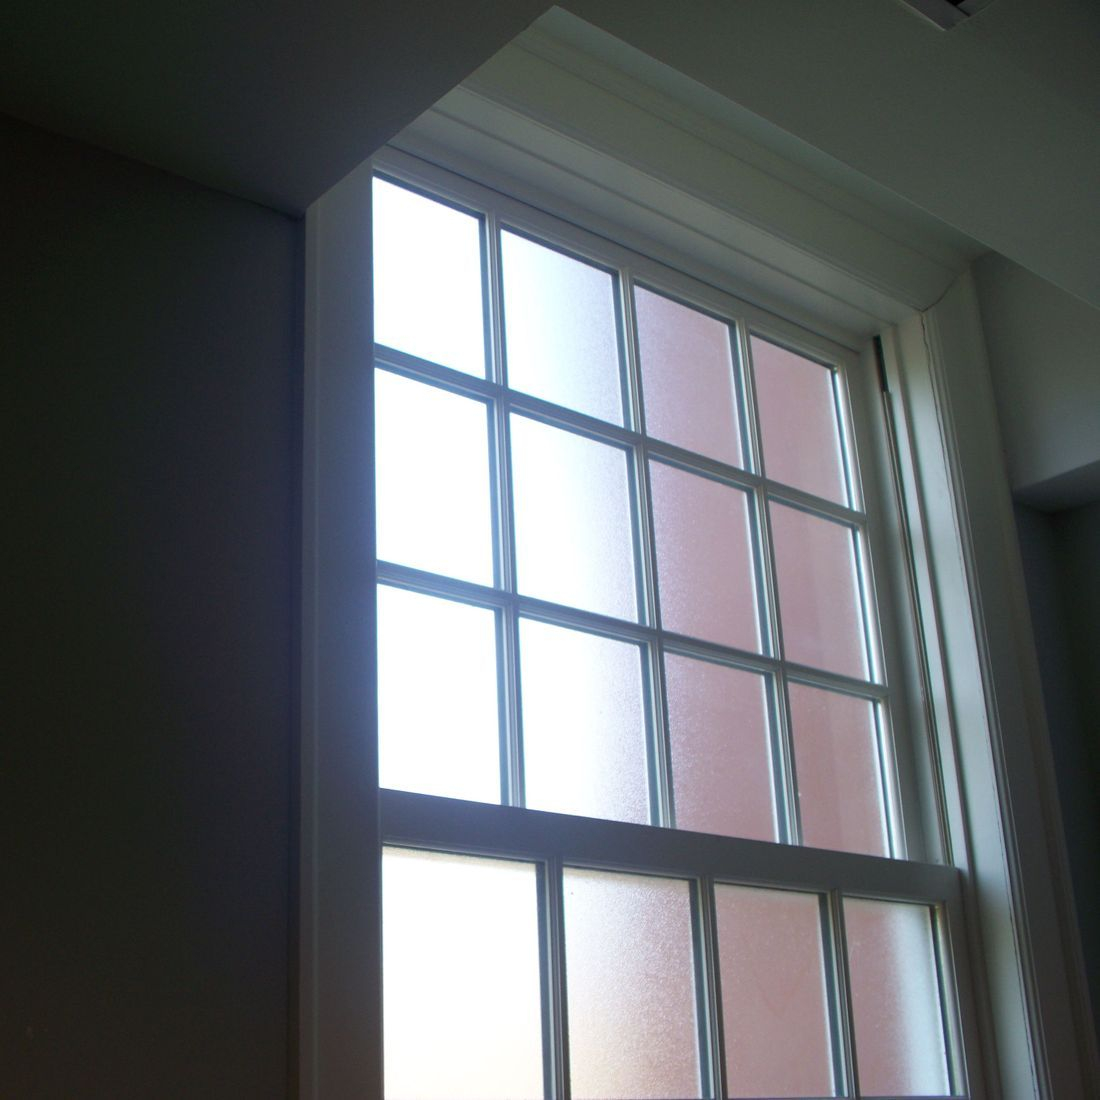 Frosted Window Films in a Range of colours for Privacy